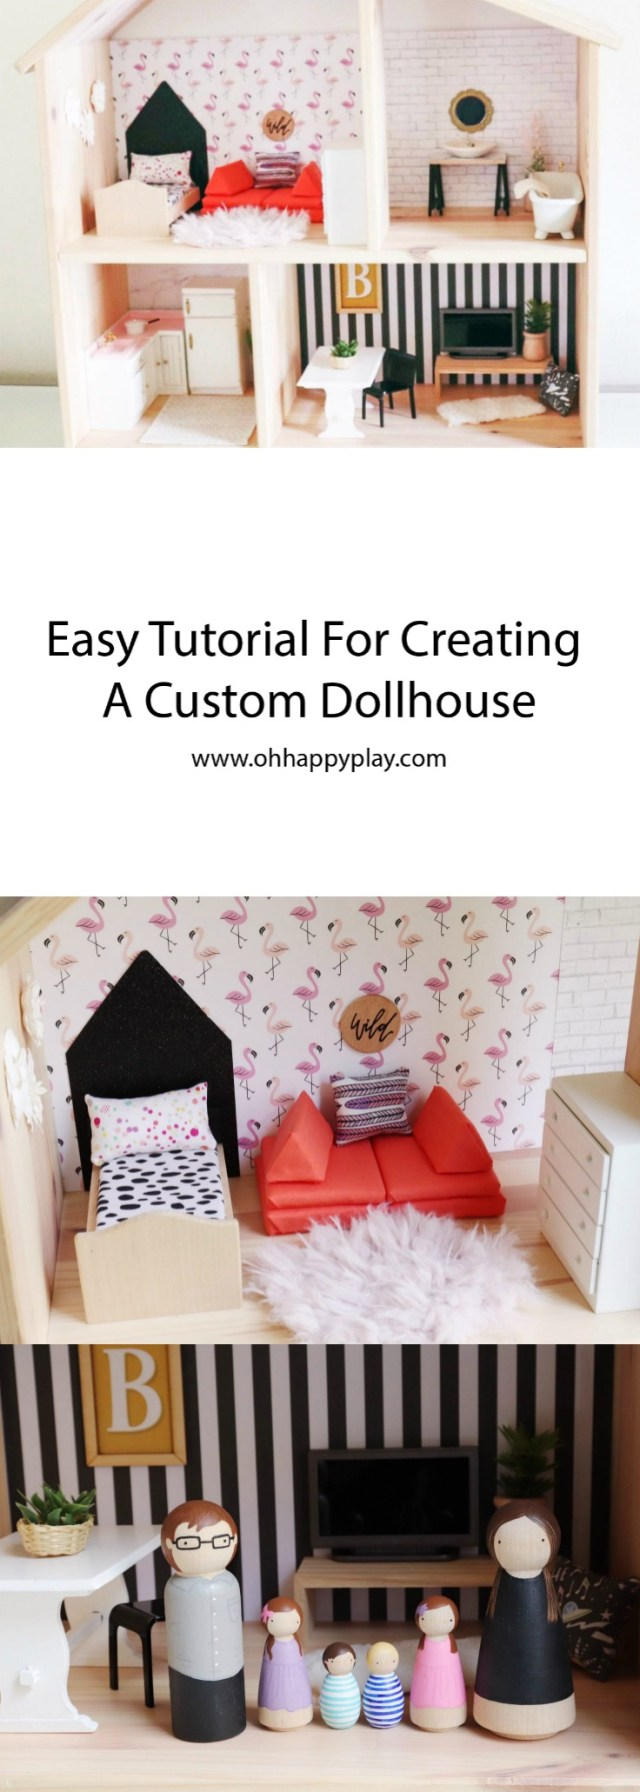 Oh Happy Play, Florida Motherhood blogger shares an easy tutorial for creating a custom dollhouse. Check it out now to find out how to build one yourself!